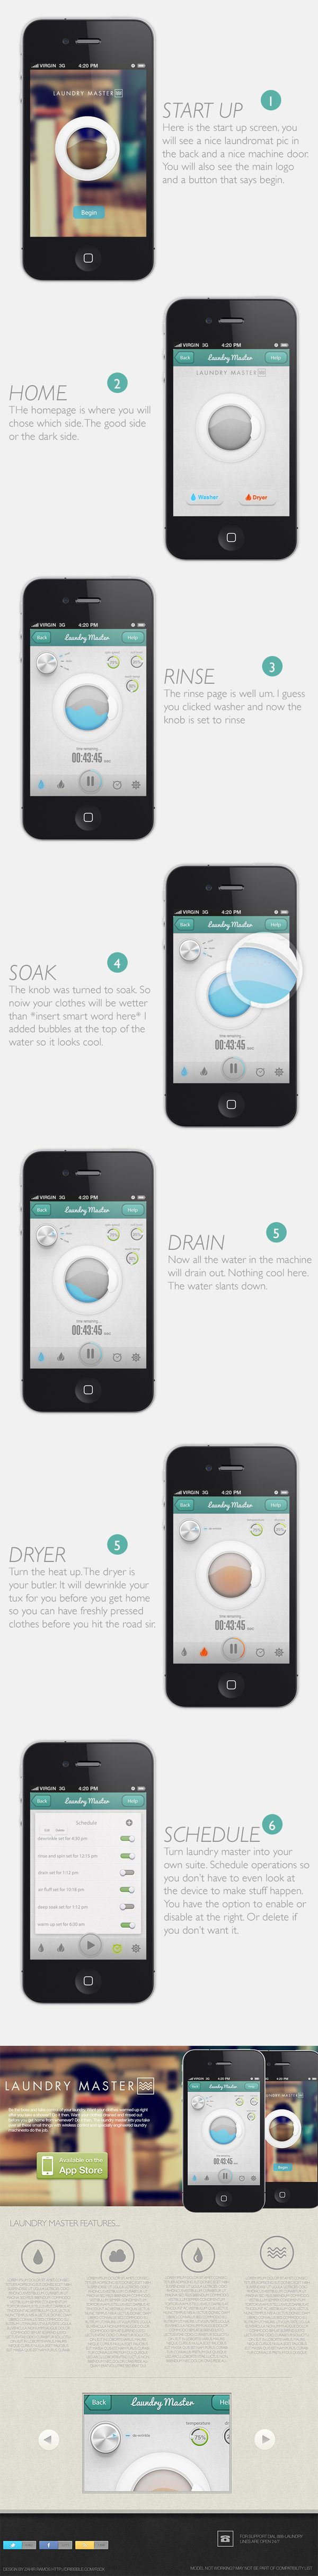 Laundry Master App by Zahir Ramos via Behance.net